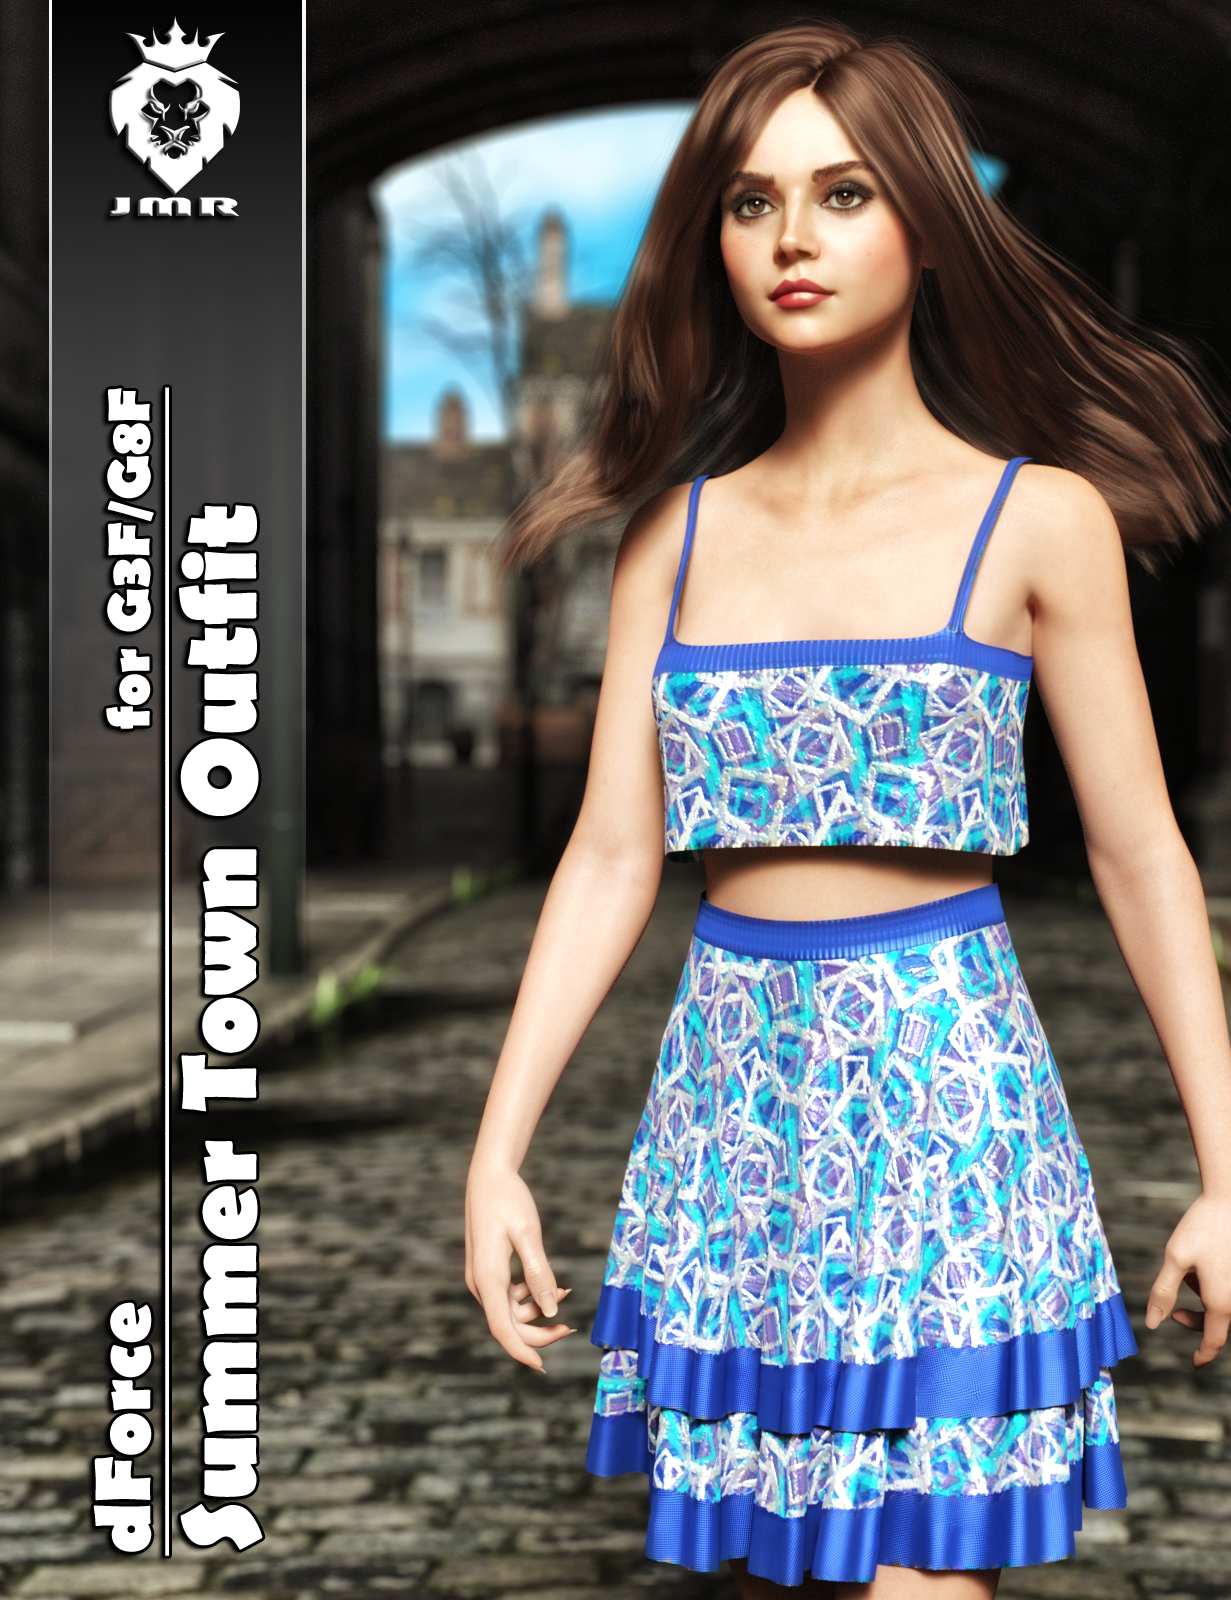 JMR dForce Summer Town Outfit for G3F and G8F